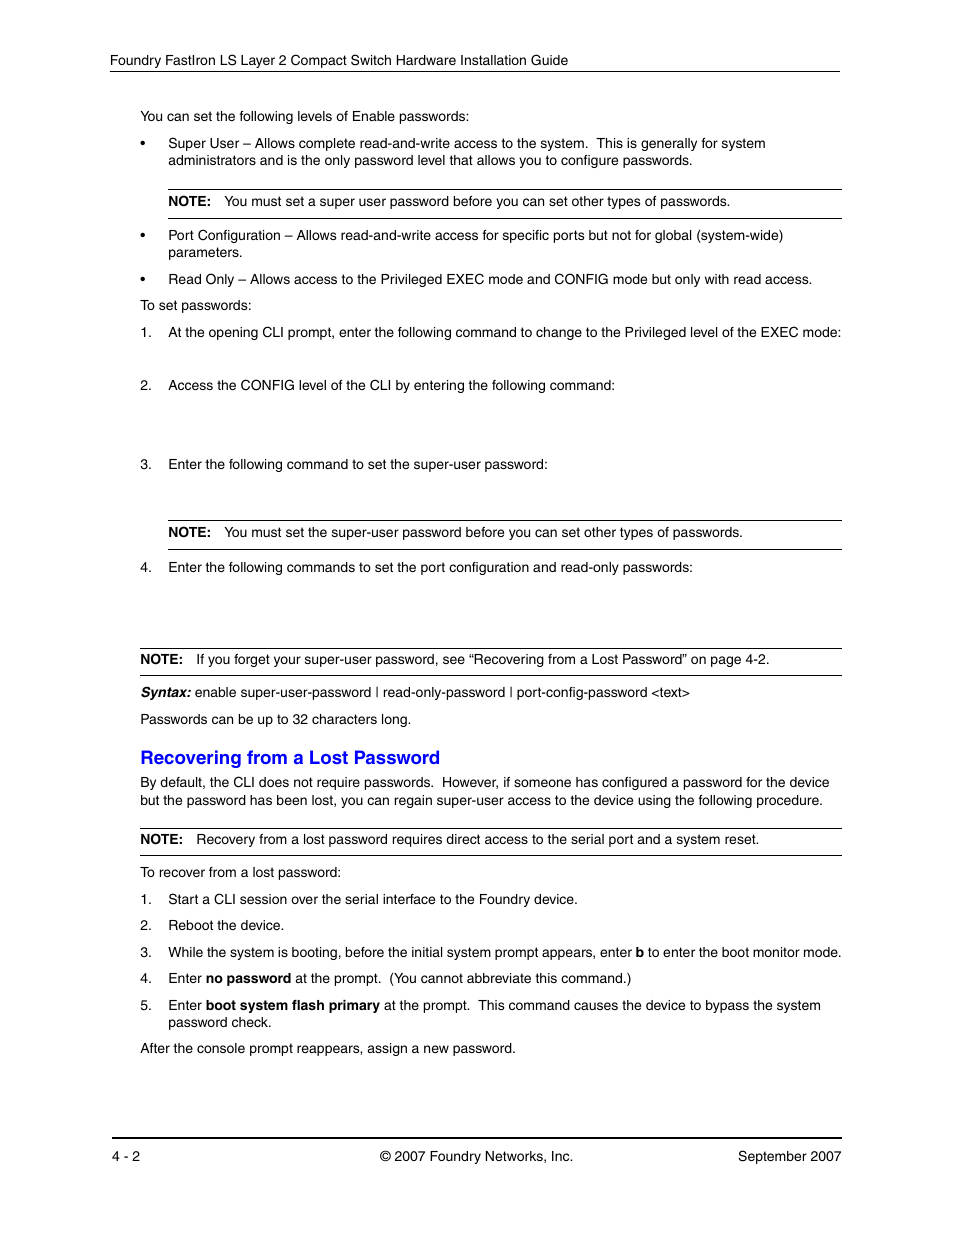 Recovering from a lost password, Ecovering, From | Foundry Networks LS 648 User  Manual | Page 36 / 76